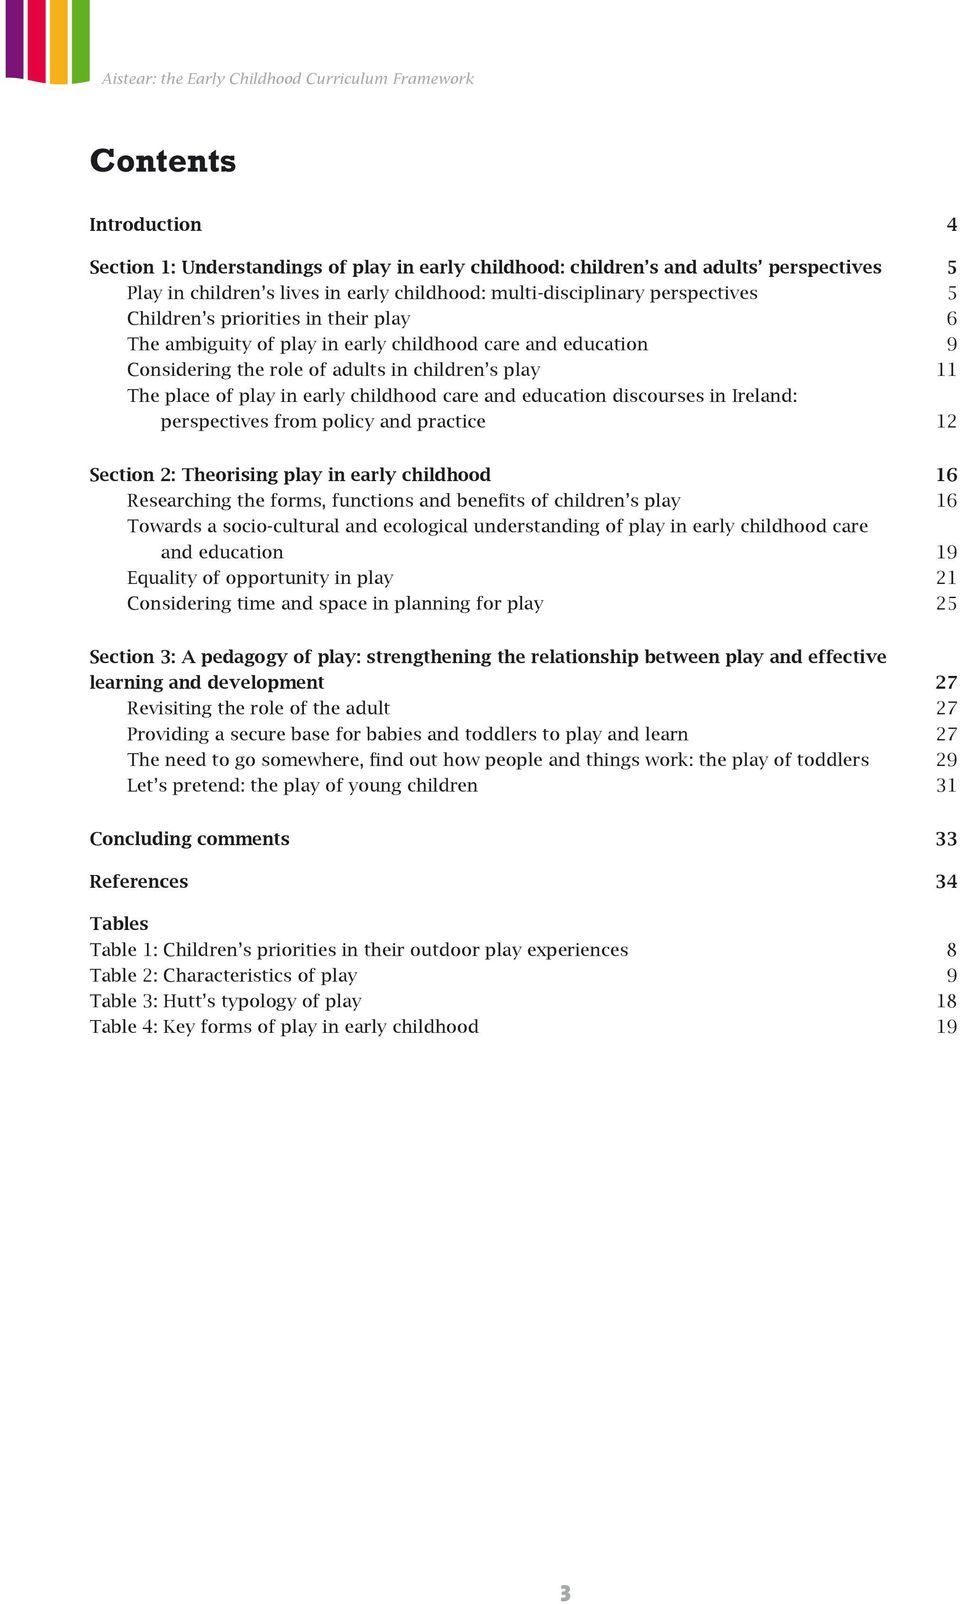 education discourses in Ireland: perspectives from policy and practice 12 Section 2: Theorising play in early childhood 16 Researching the forms, functions and benefits of children s play 16 Towards